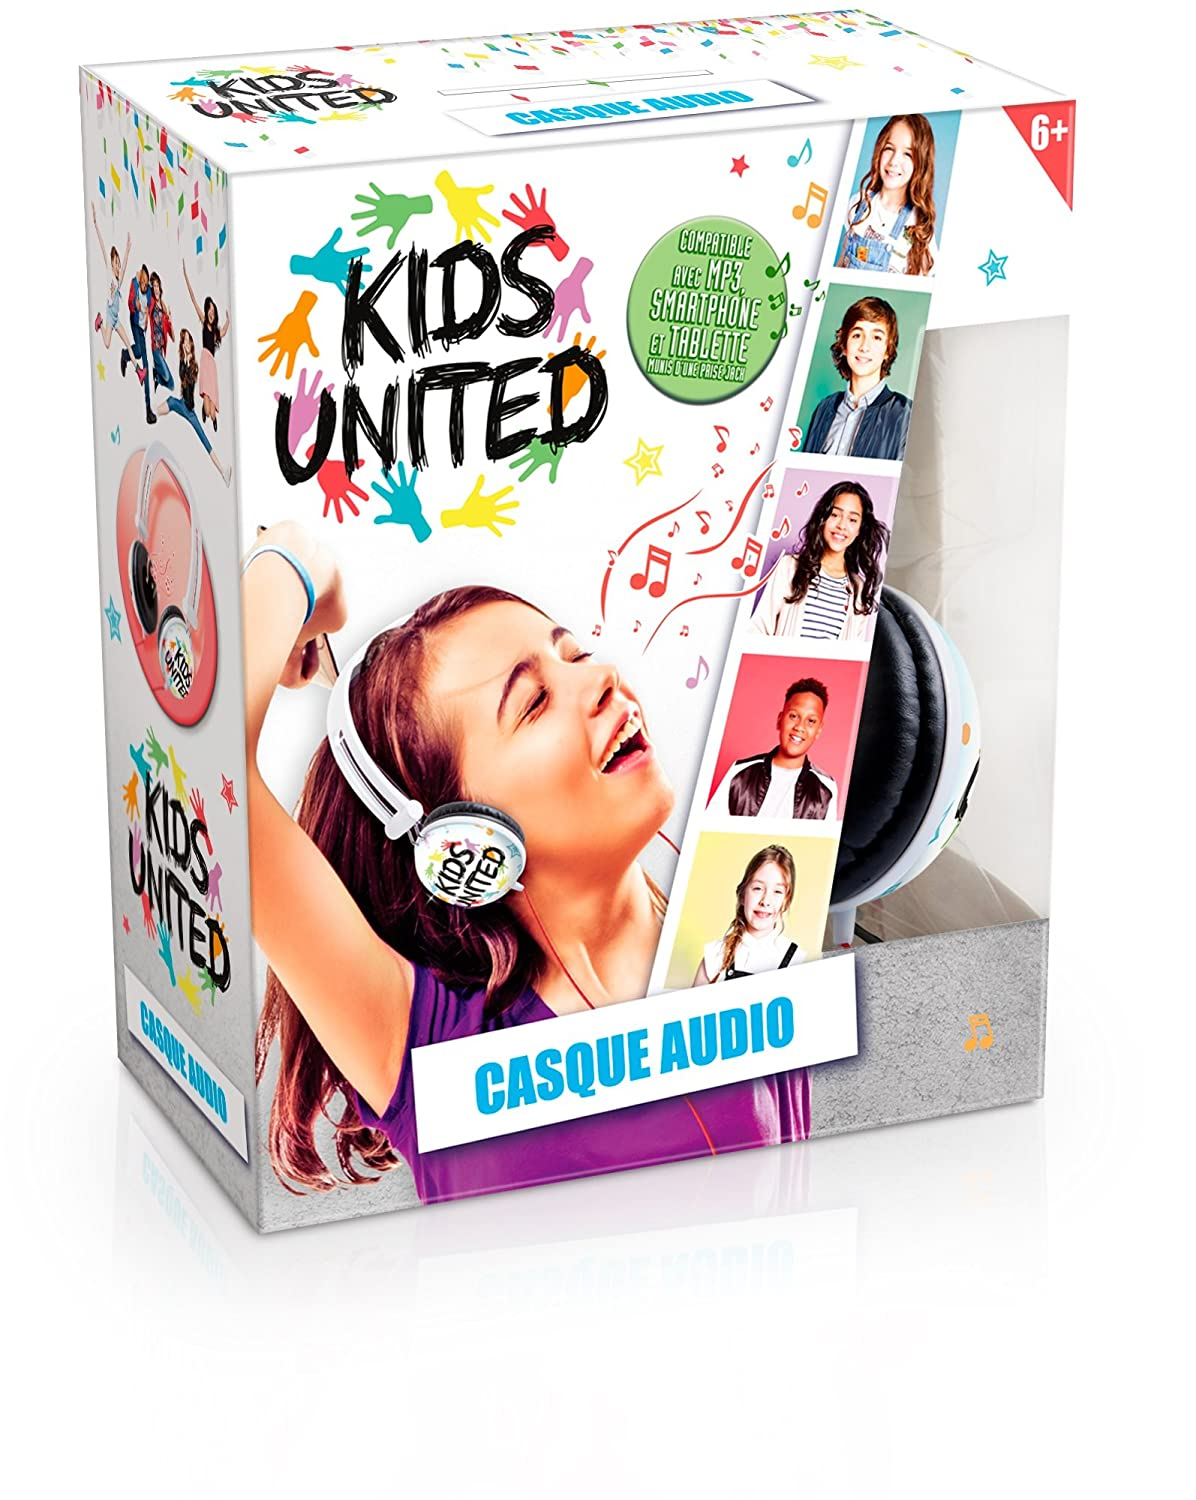 Canal Toys 1 x Electronique-Kids United-Casque Audio, CT07203